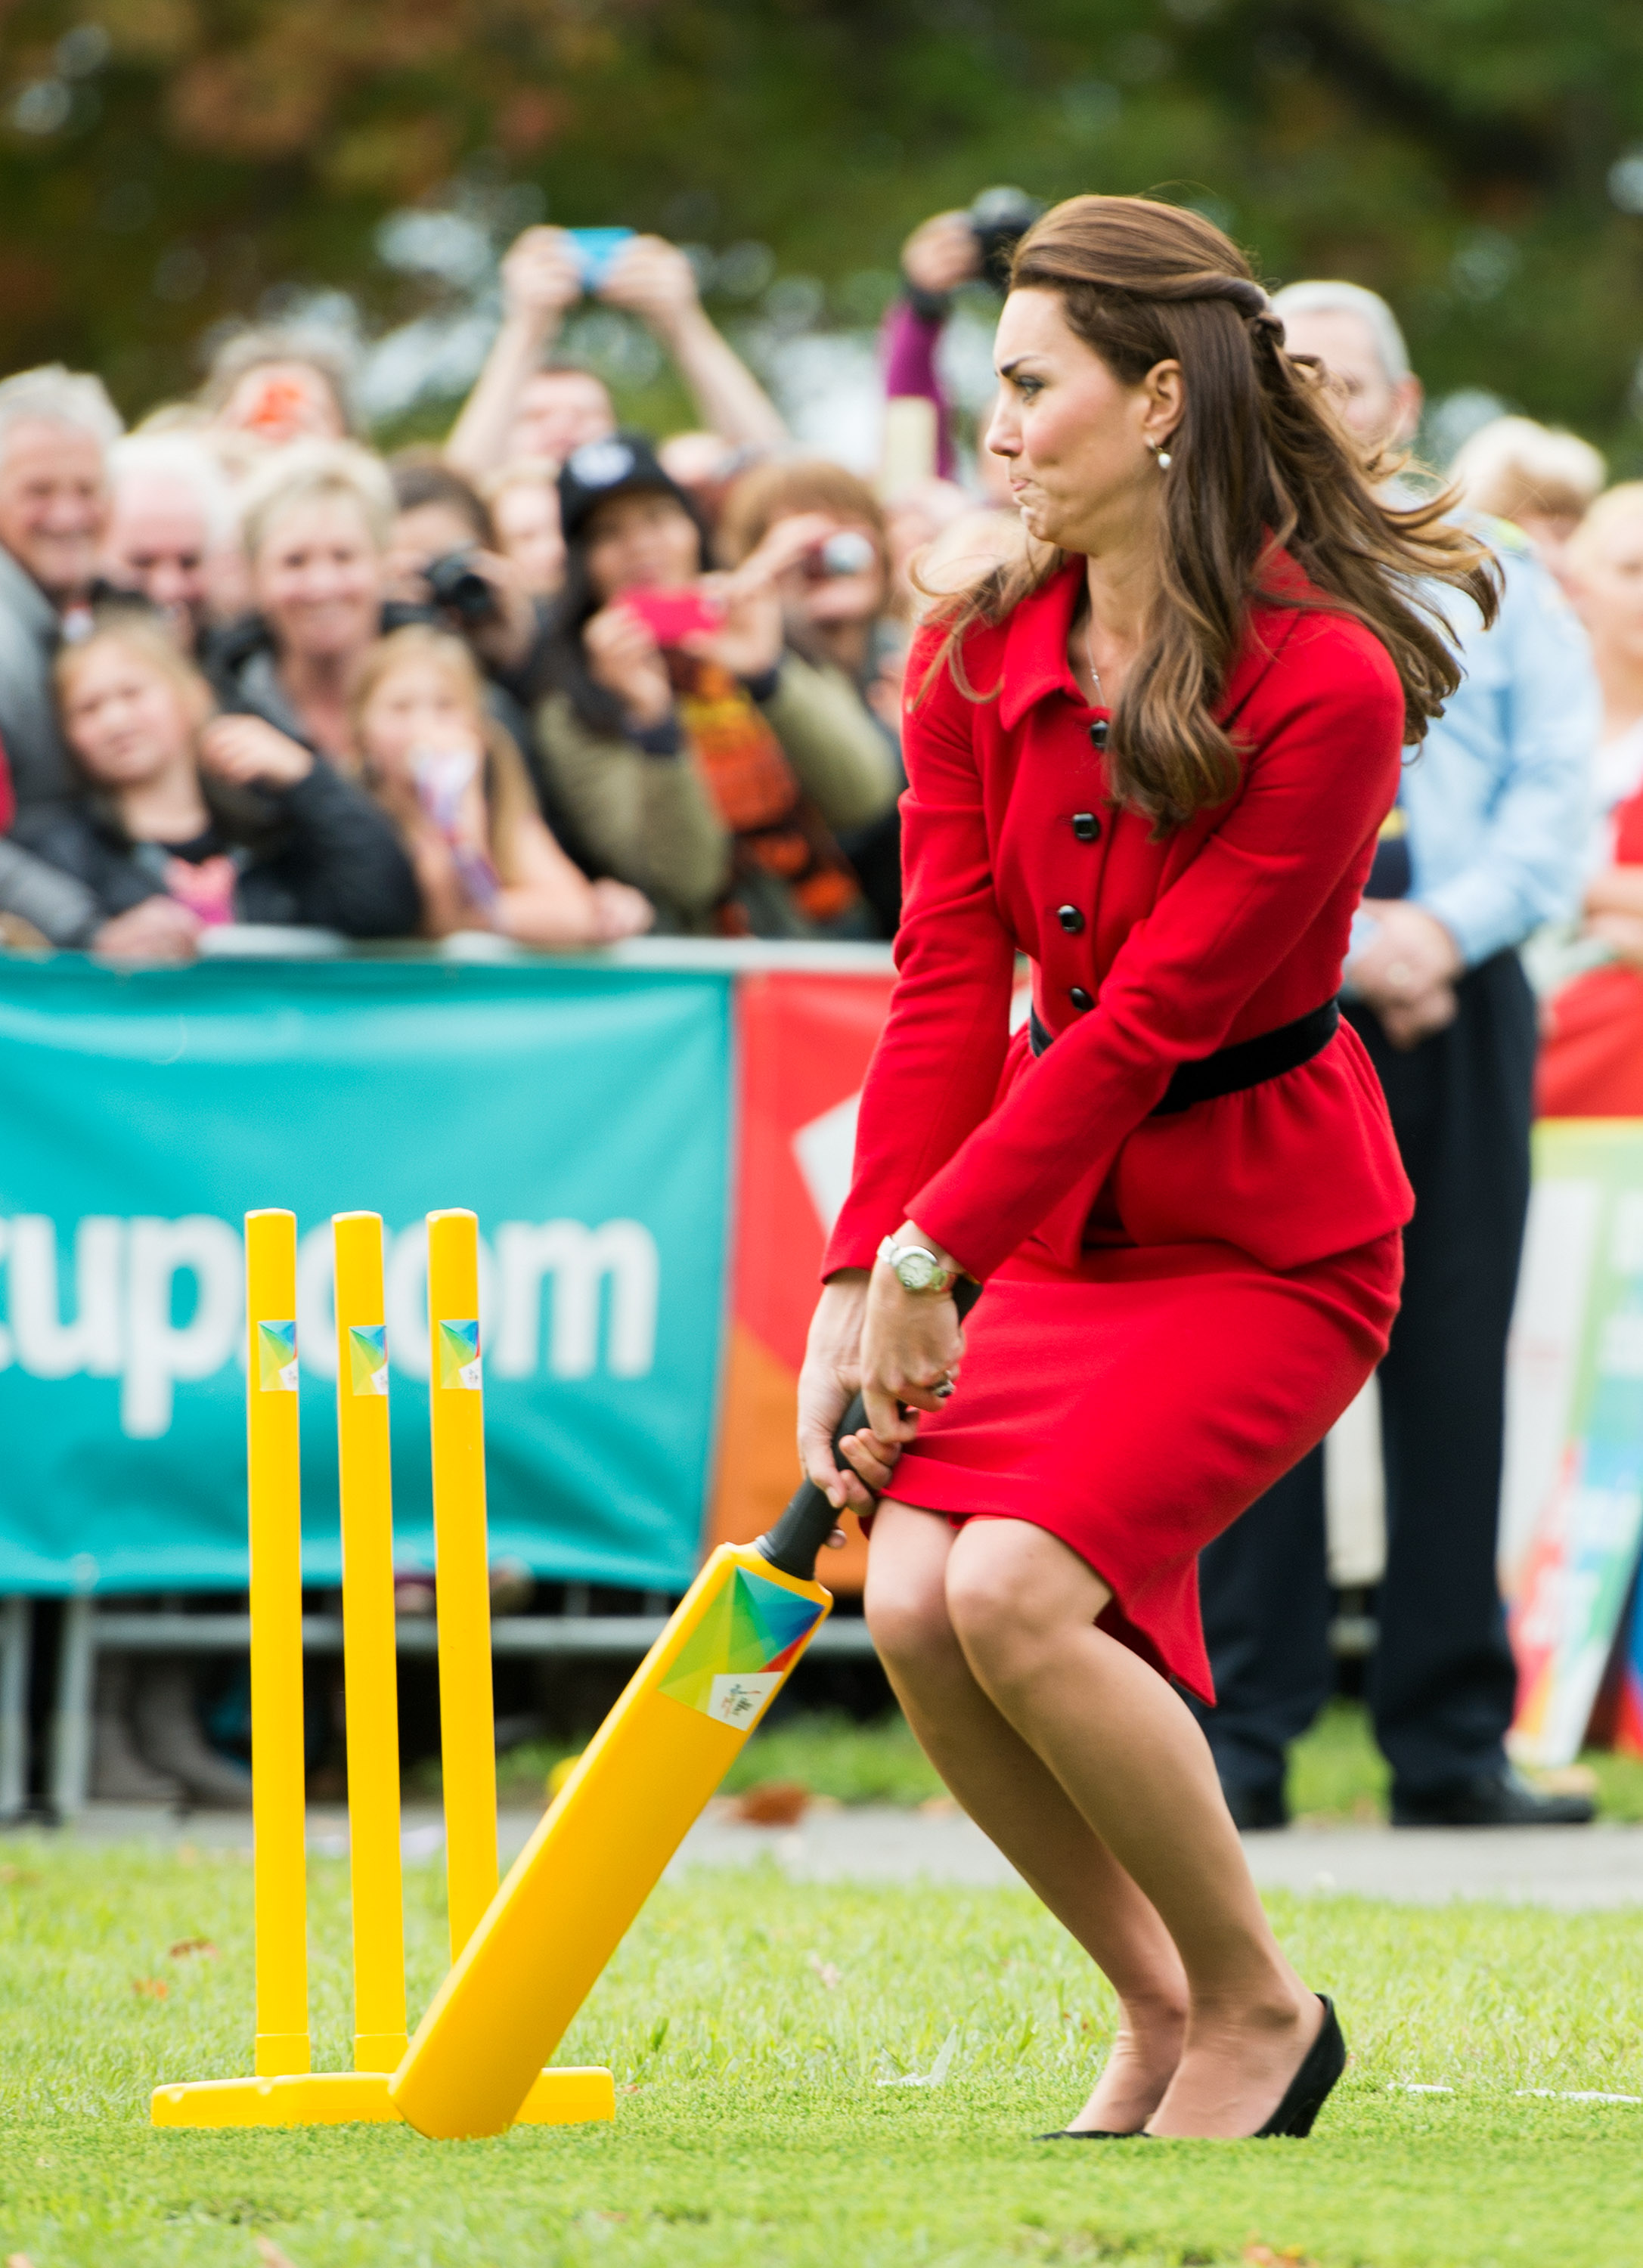 CHRISTCHURCH, NEW ZEALAND - APRIL 14: Catherine, Duchess of Cambridge bats during a game of cricket in Latimer Square on April 14, 2014 in Christchurch, New Zealand. The Duke and Duchess of Cambridge are on a three-week tour of Australia and New Zealand, the first official trip overseas with their son, Prince George of Cambridge. (Photo by Samir Hussein/WireImage)